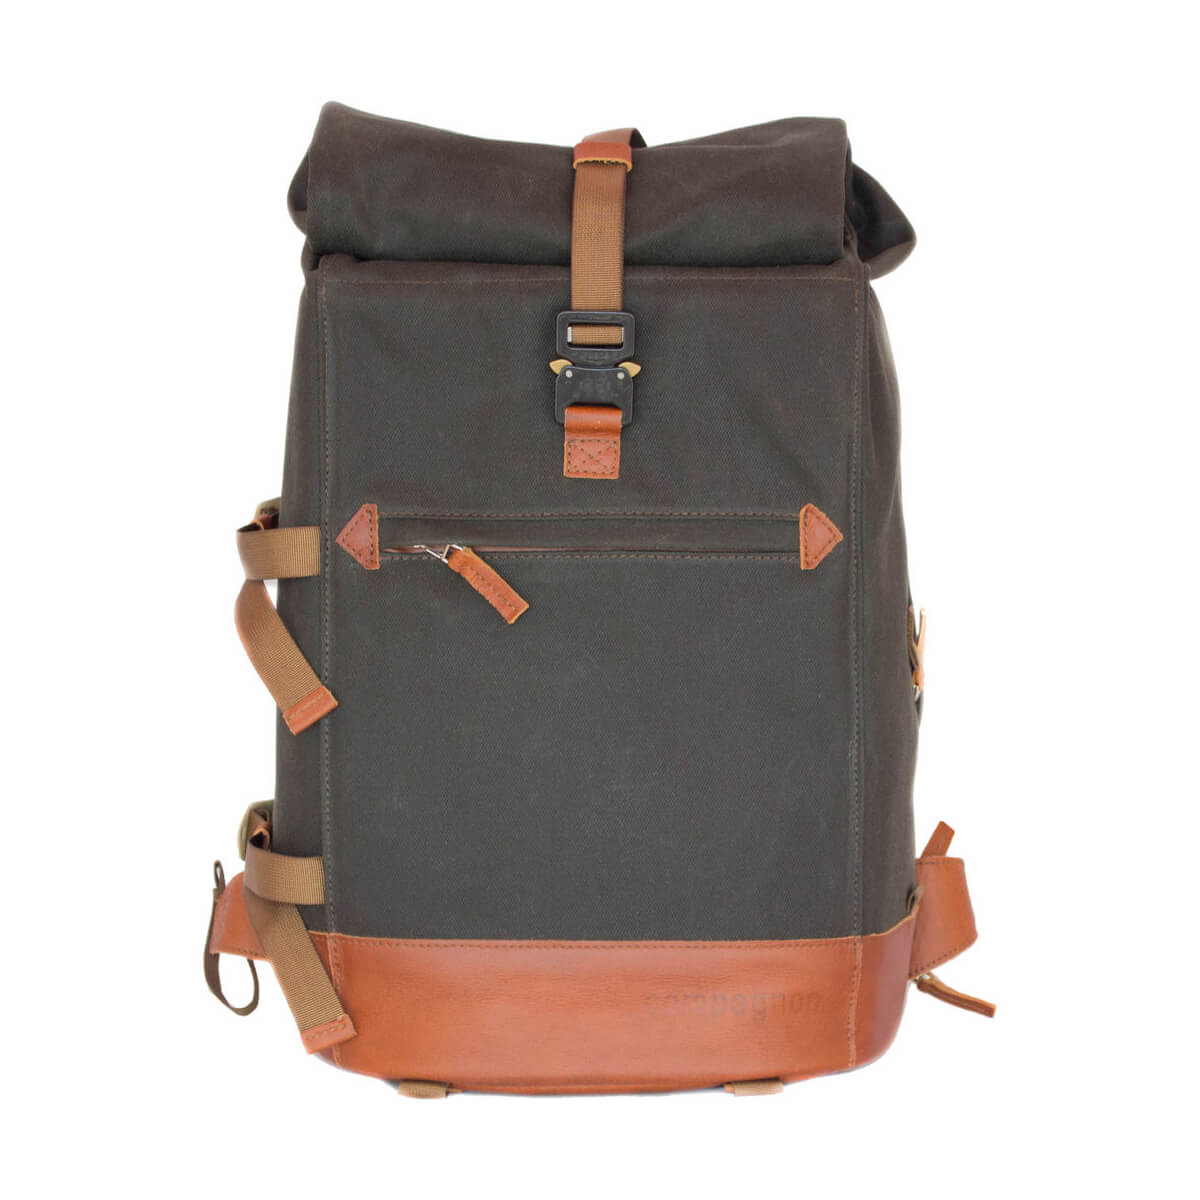 Compagnon The Backpack for Camera & Laptop